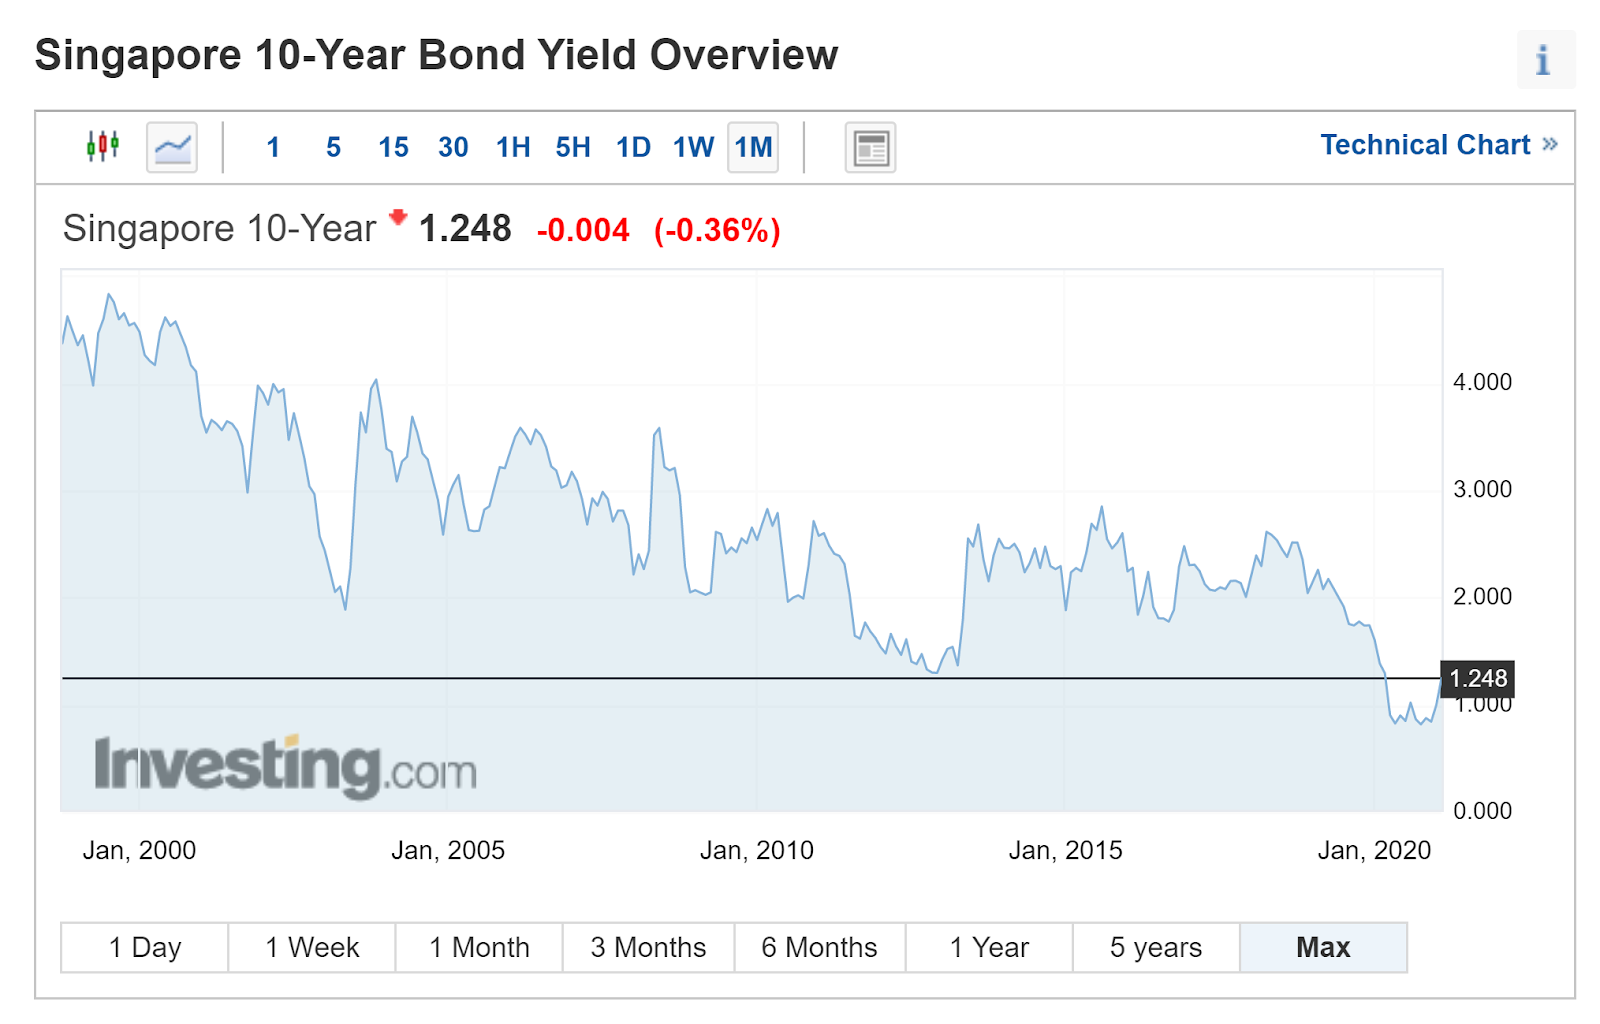 10 year overview of bond yield